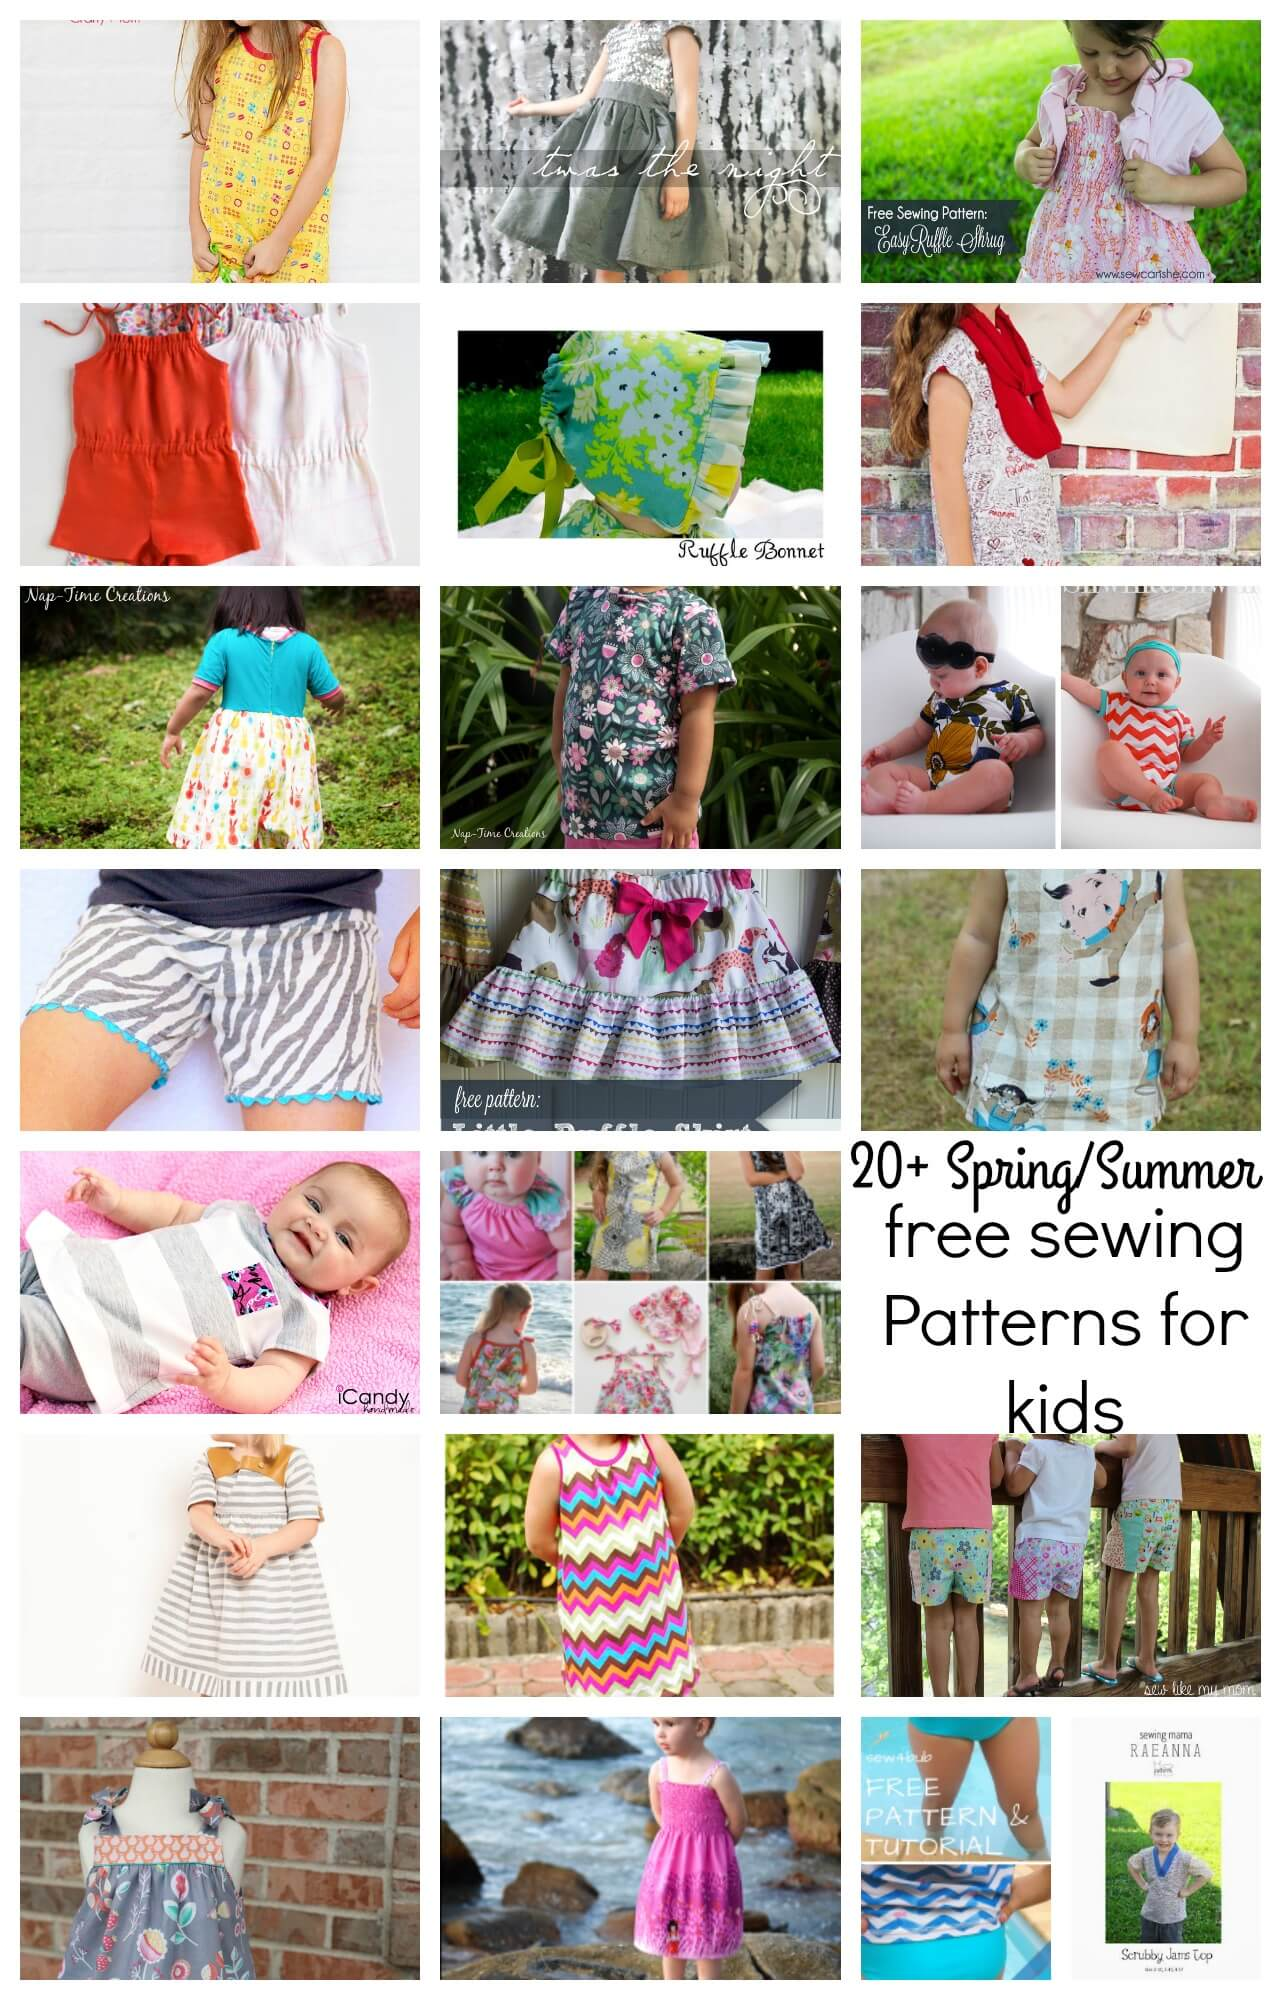 20+ Spring Summer Free Sewing Patterns for Kids 2016